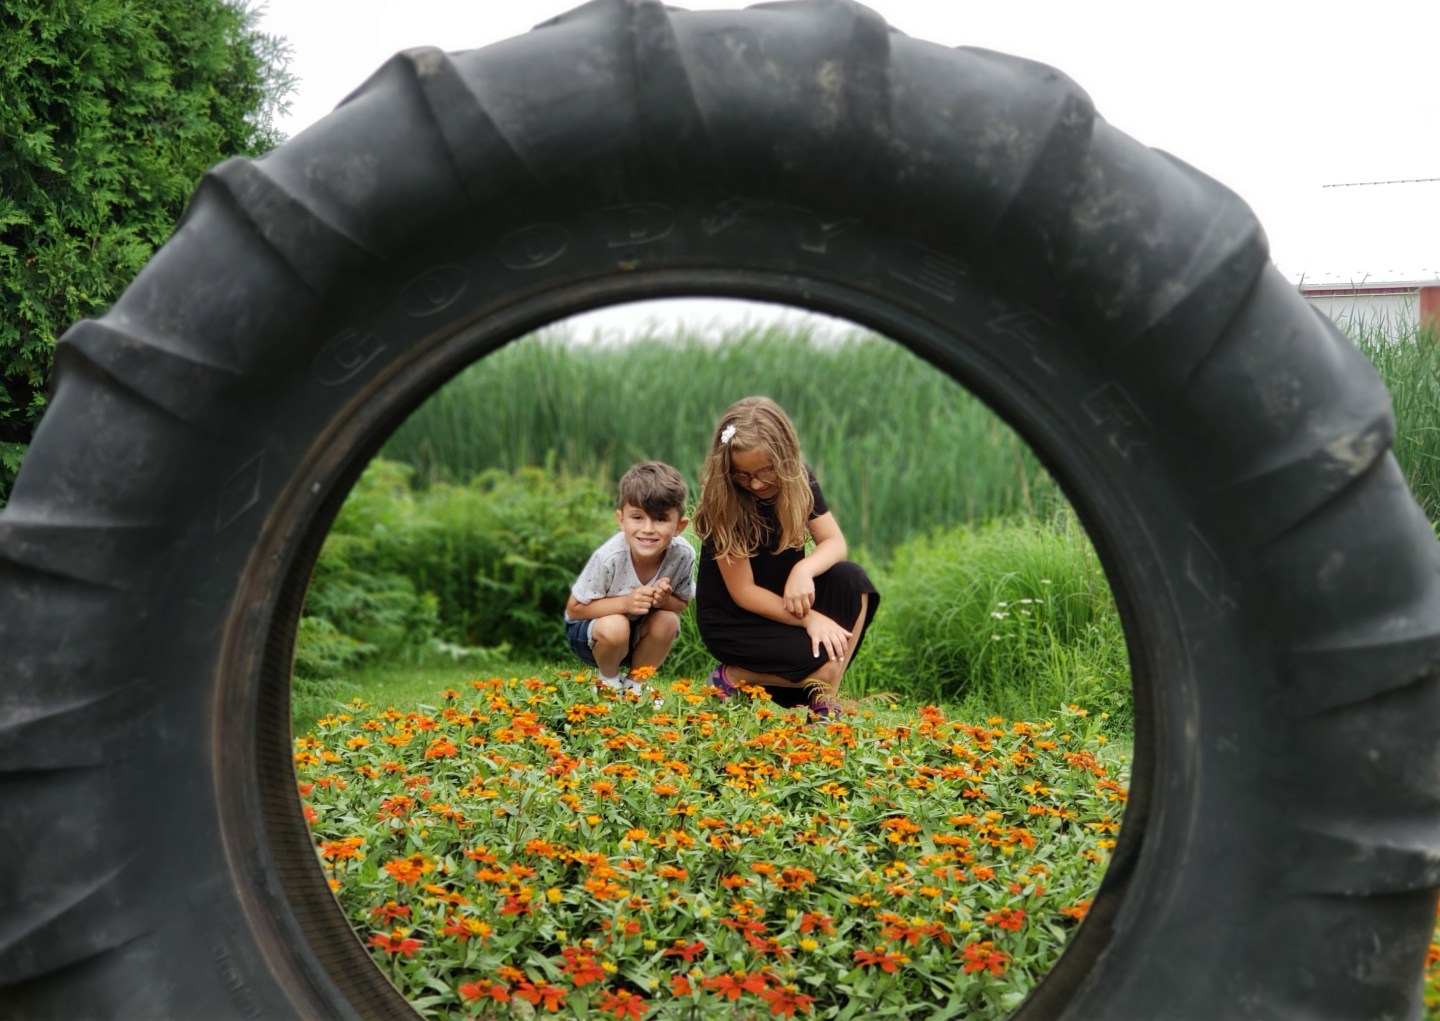 40+ parks to visit in the western suburbs this summer